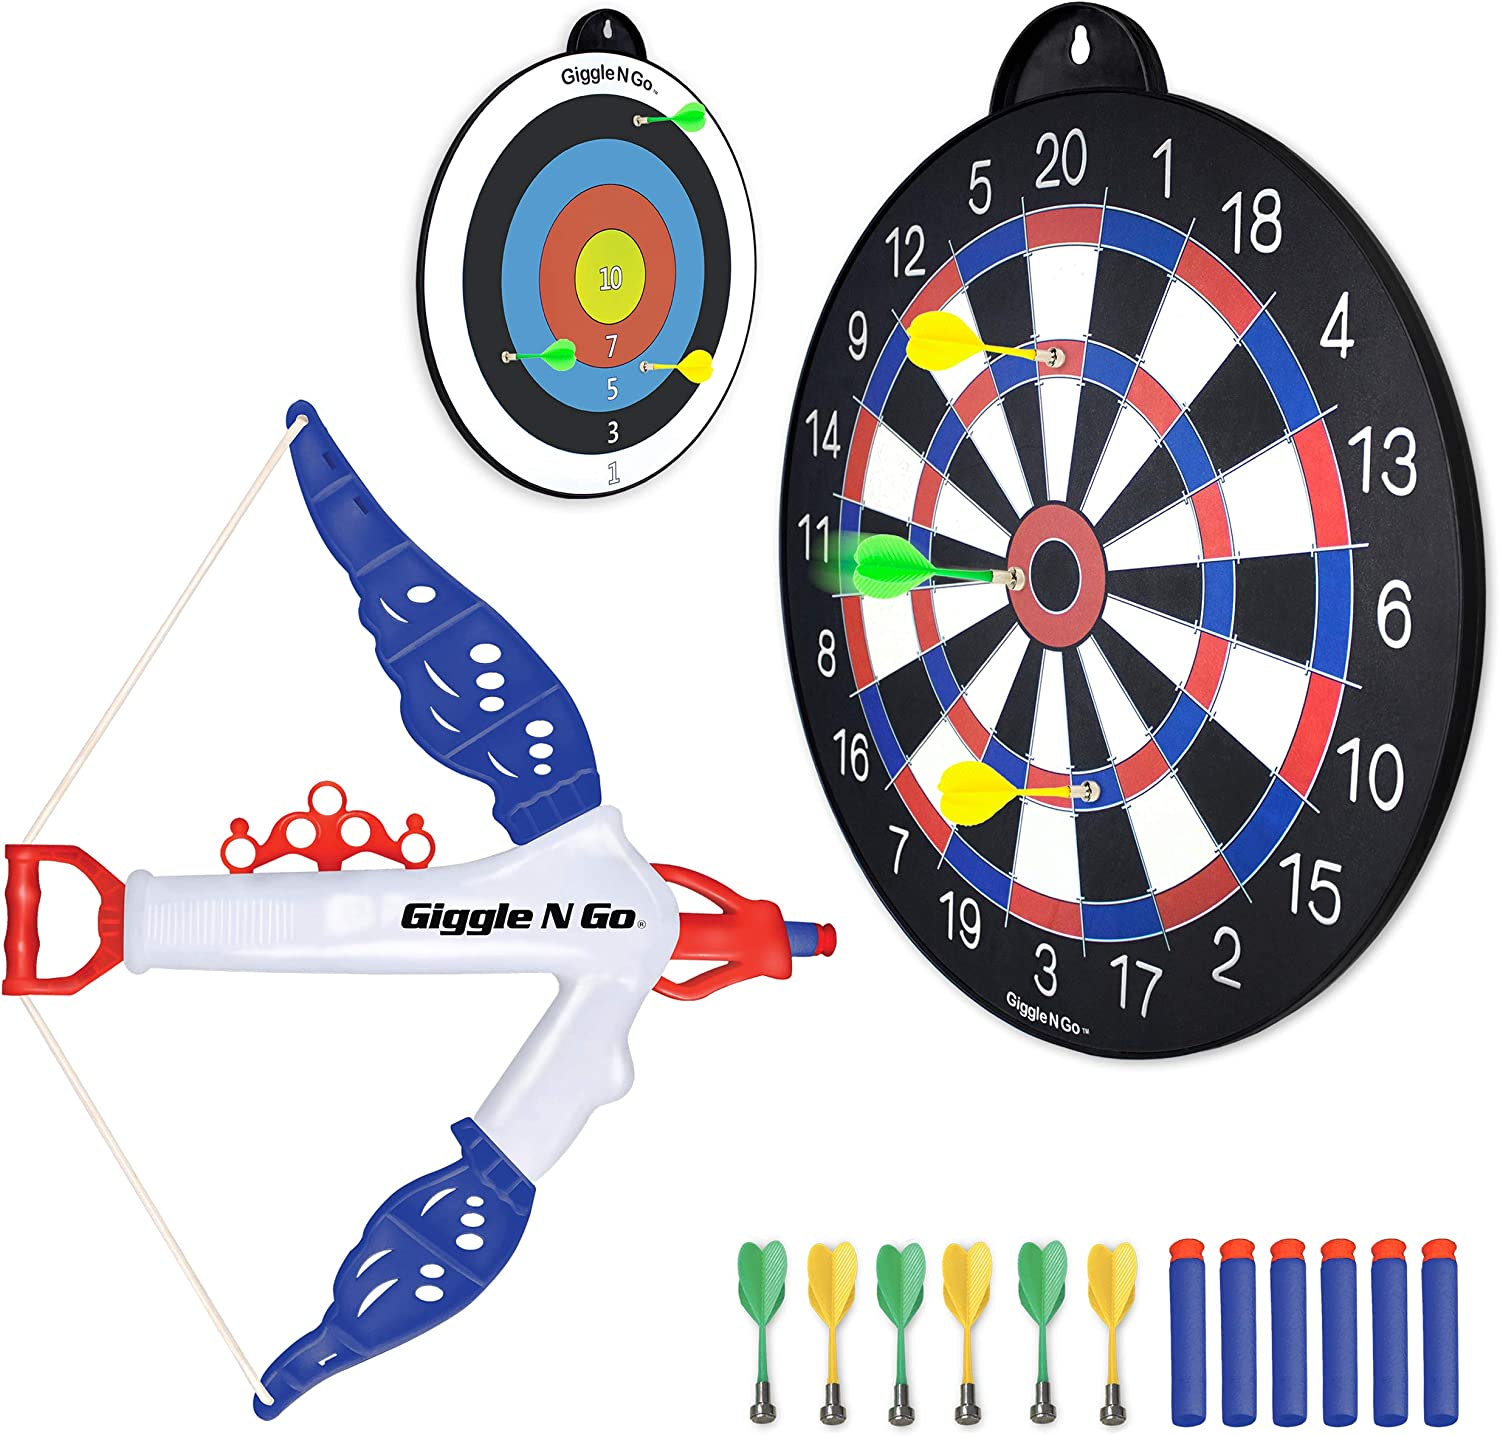 Giggle N Go Magnetic Dart Kids Board Outstanding B for - Max 58% OFF